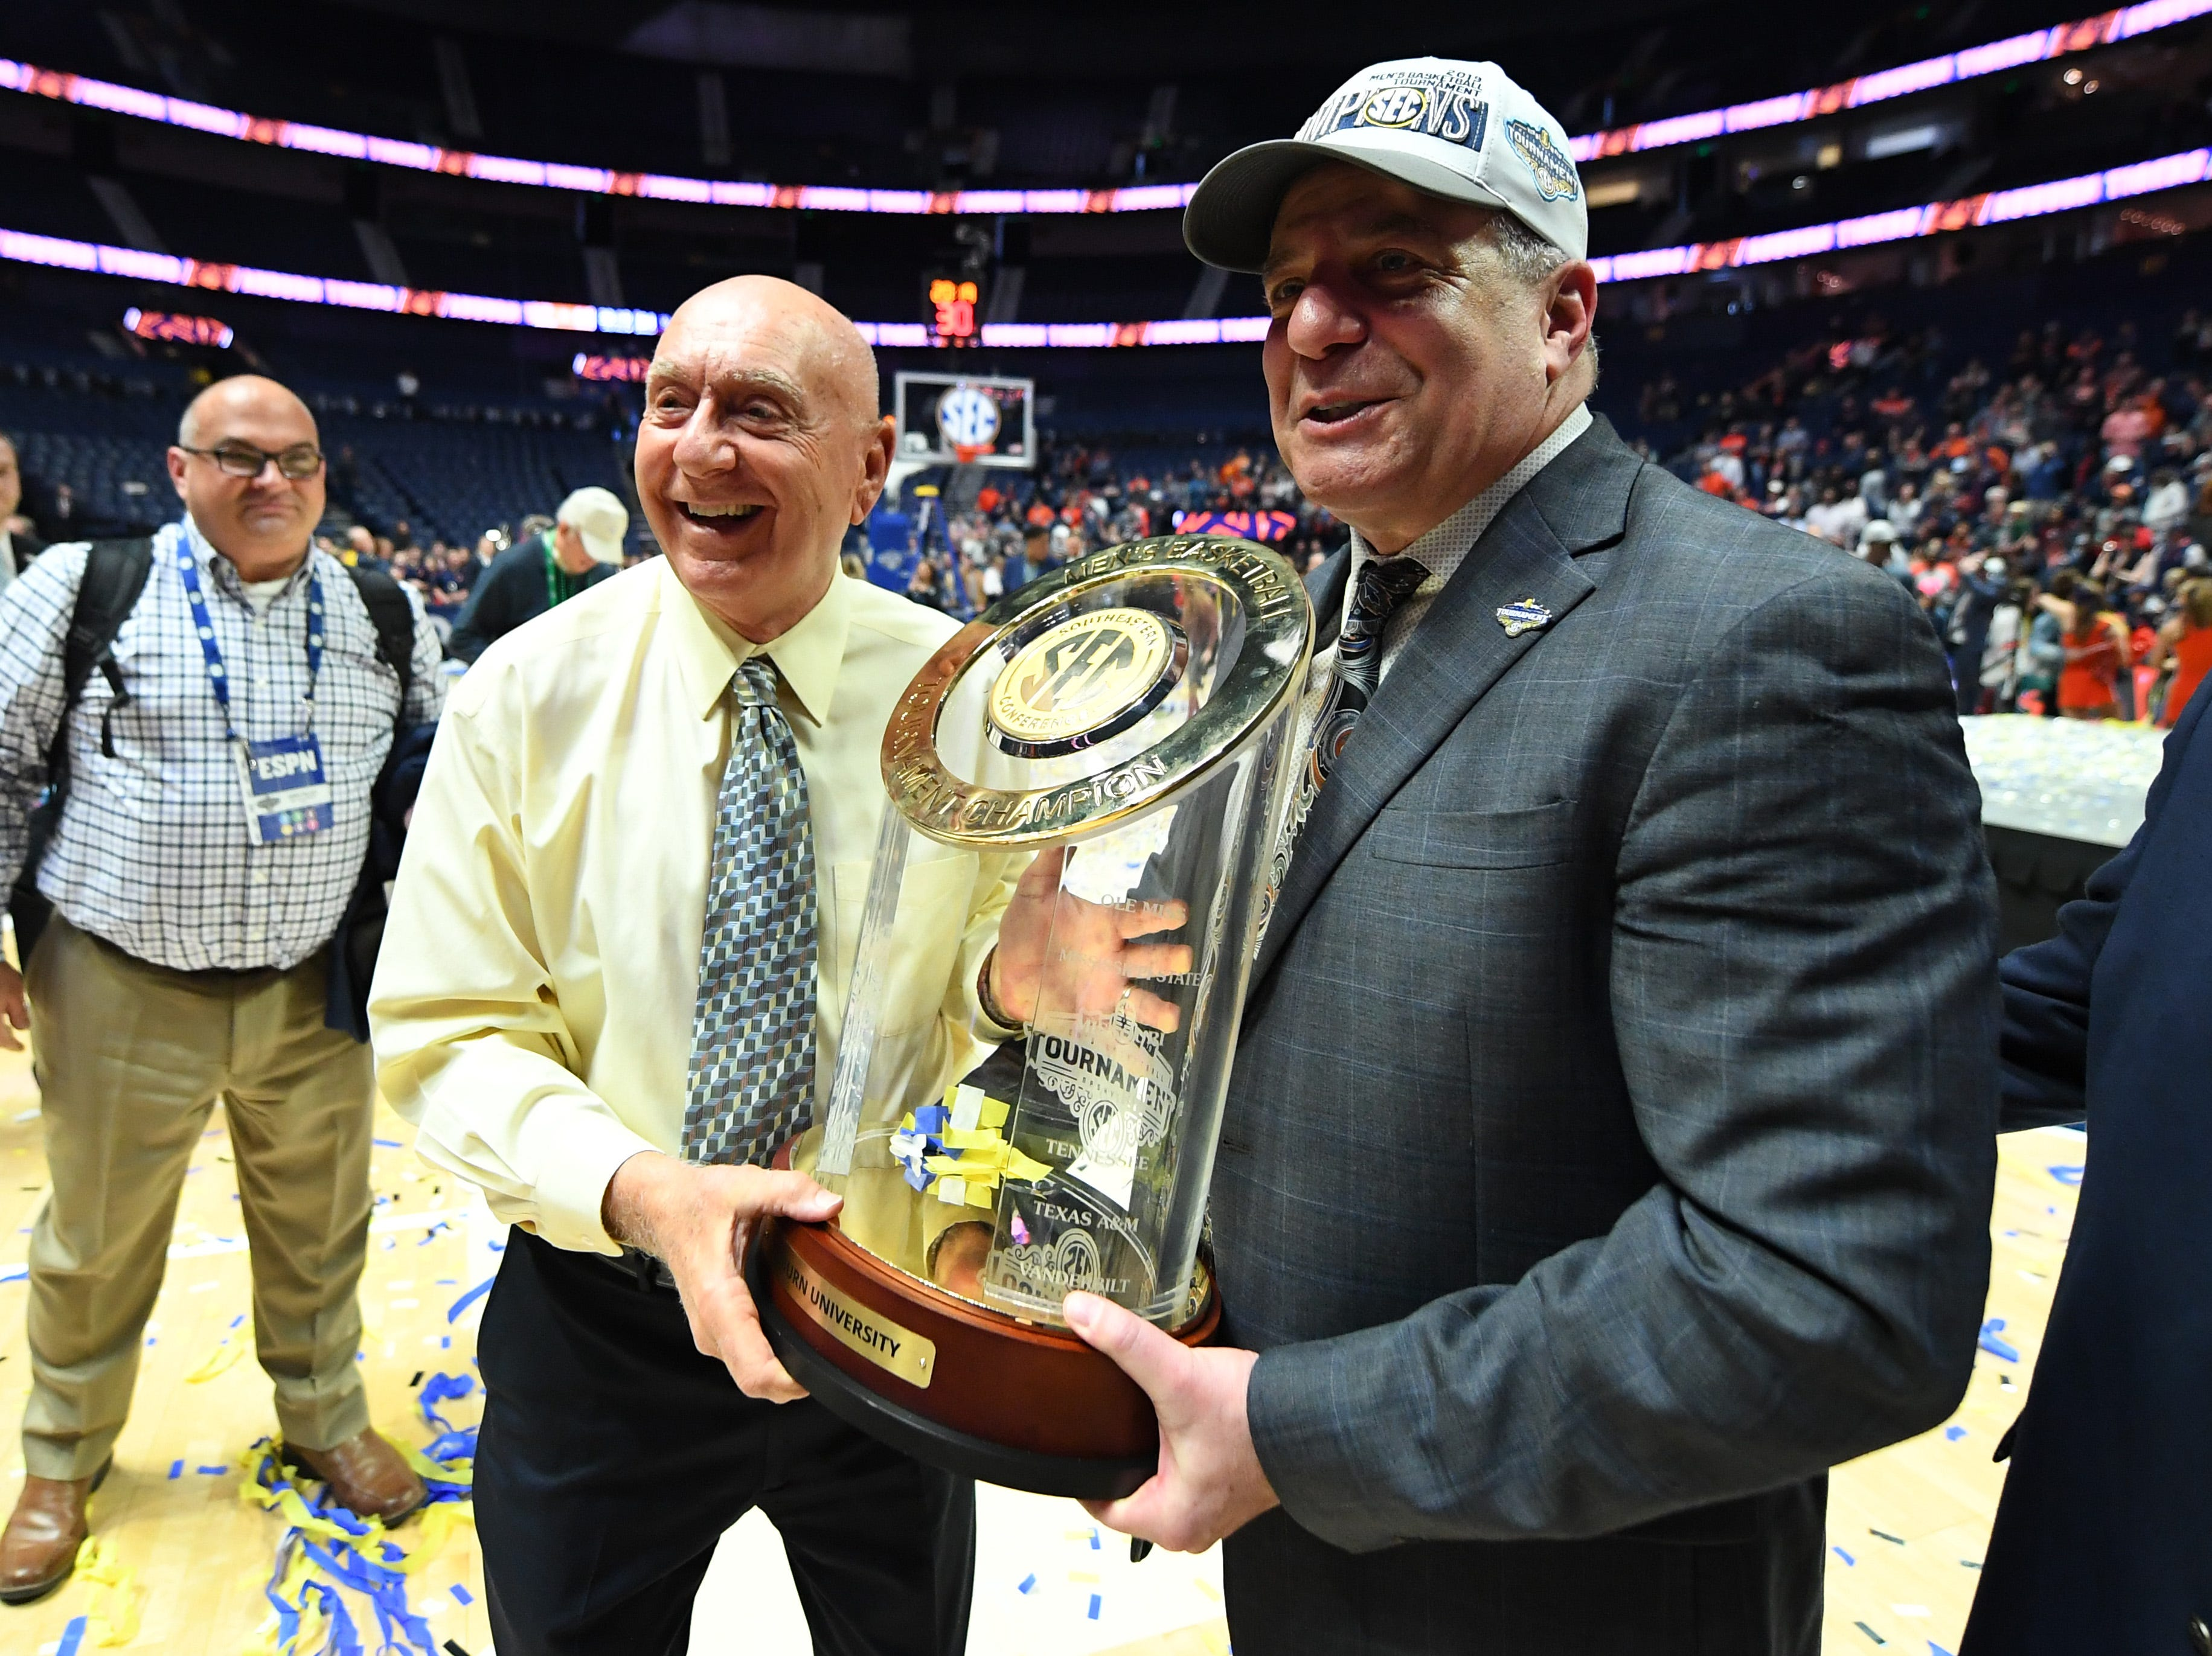 Mar 17, 2019; Nashville, TN, USA; Auburn Tigers head coach Bruce Pearl poses with ESPN analyst Dick Vitale after beating the Tennessee Volunteers in the SEC conference tournament championship game at Bridgestone Arena. Mandatory Credit: Christopher Hanewinckel-USA TODAY Sports